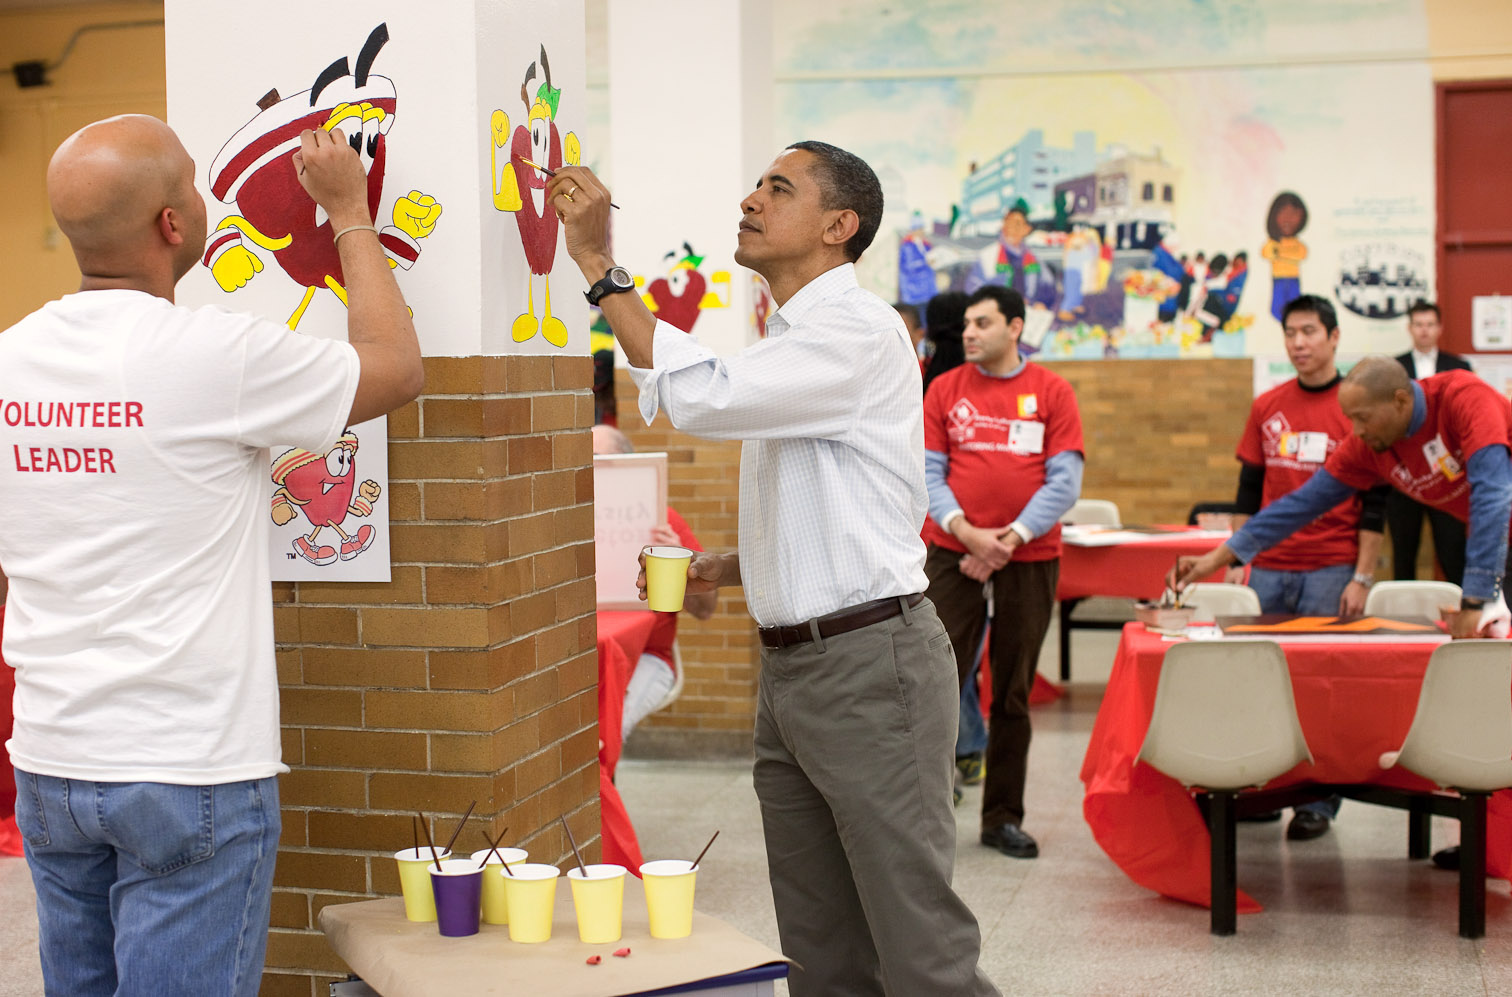 President Barack Obama Helps Paint Pictures of Fruit During a Service Project on Martin Luther King Day